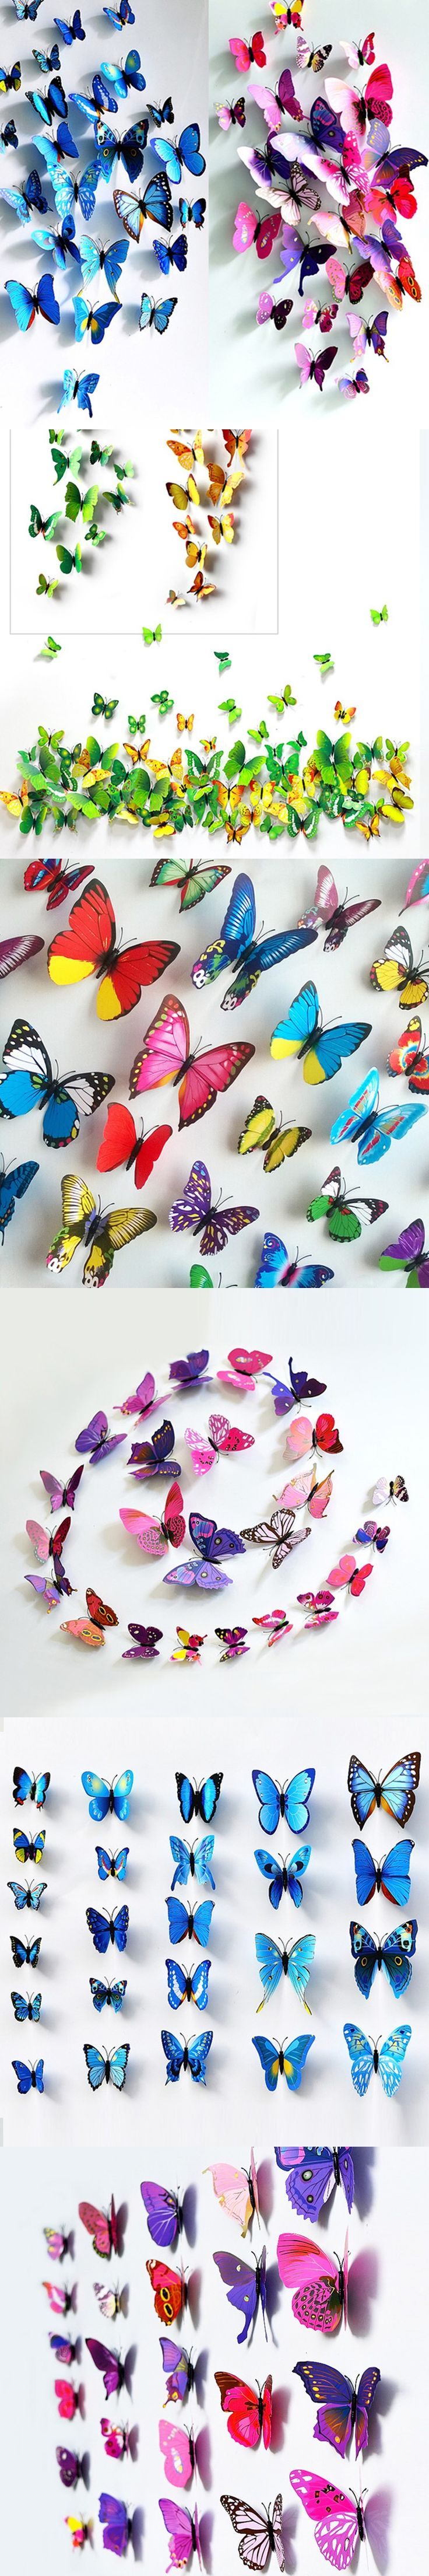 best 25 butterfly wall stickers ideas on pinterest butterfly 12pcs pvc 3d butterfly wall decor cute butterflies wall stickers art decals home decoration